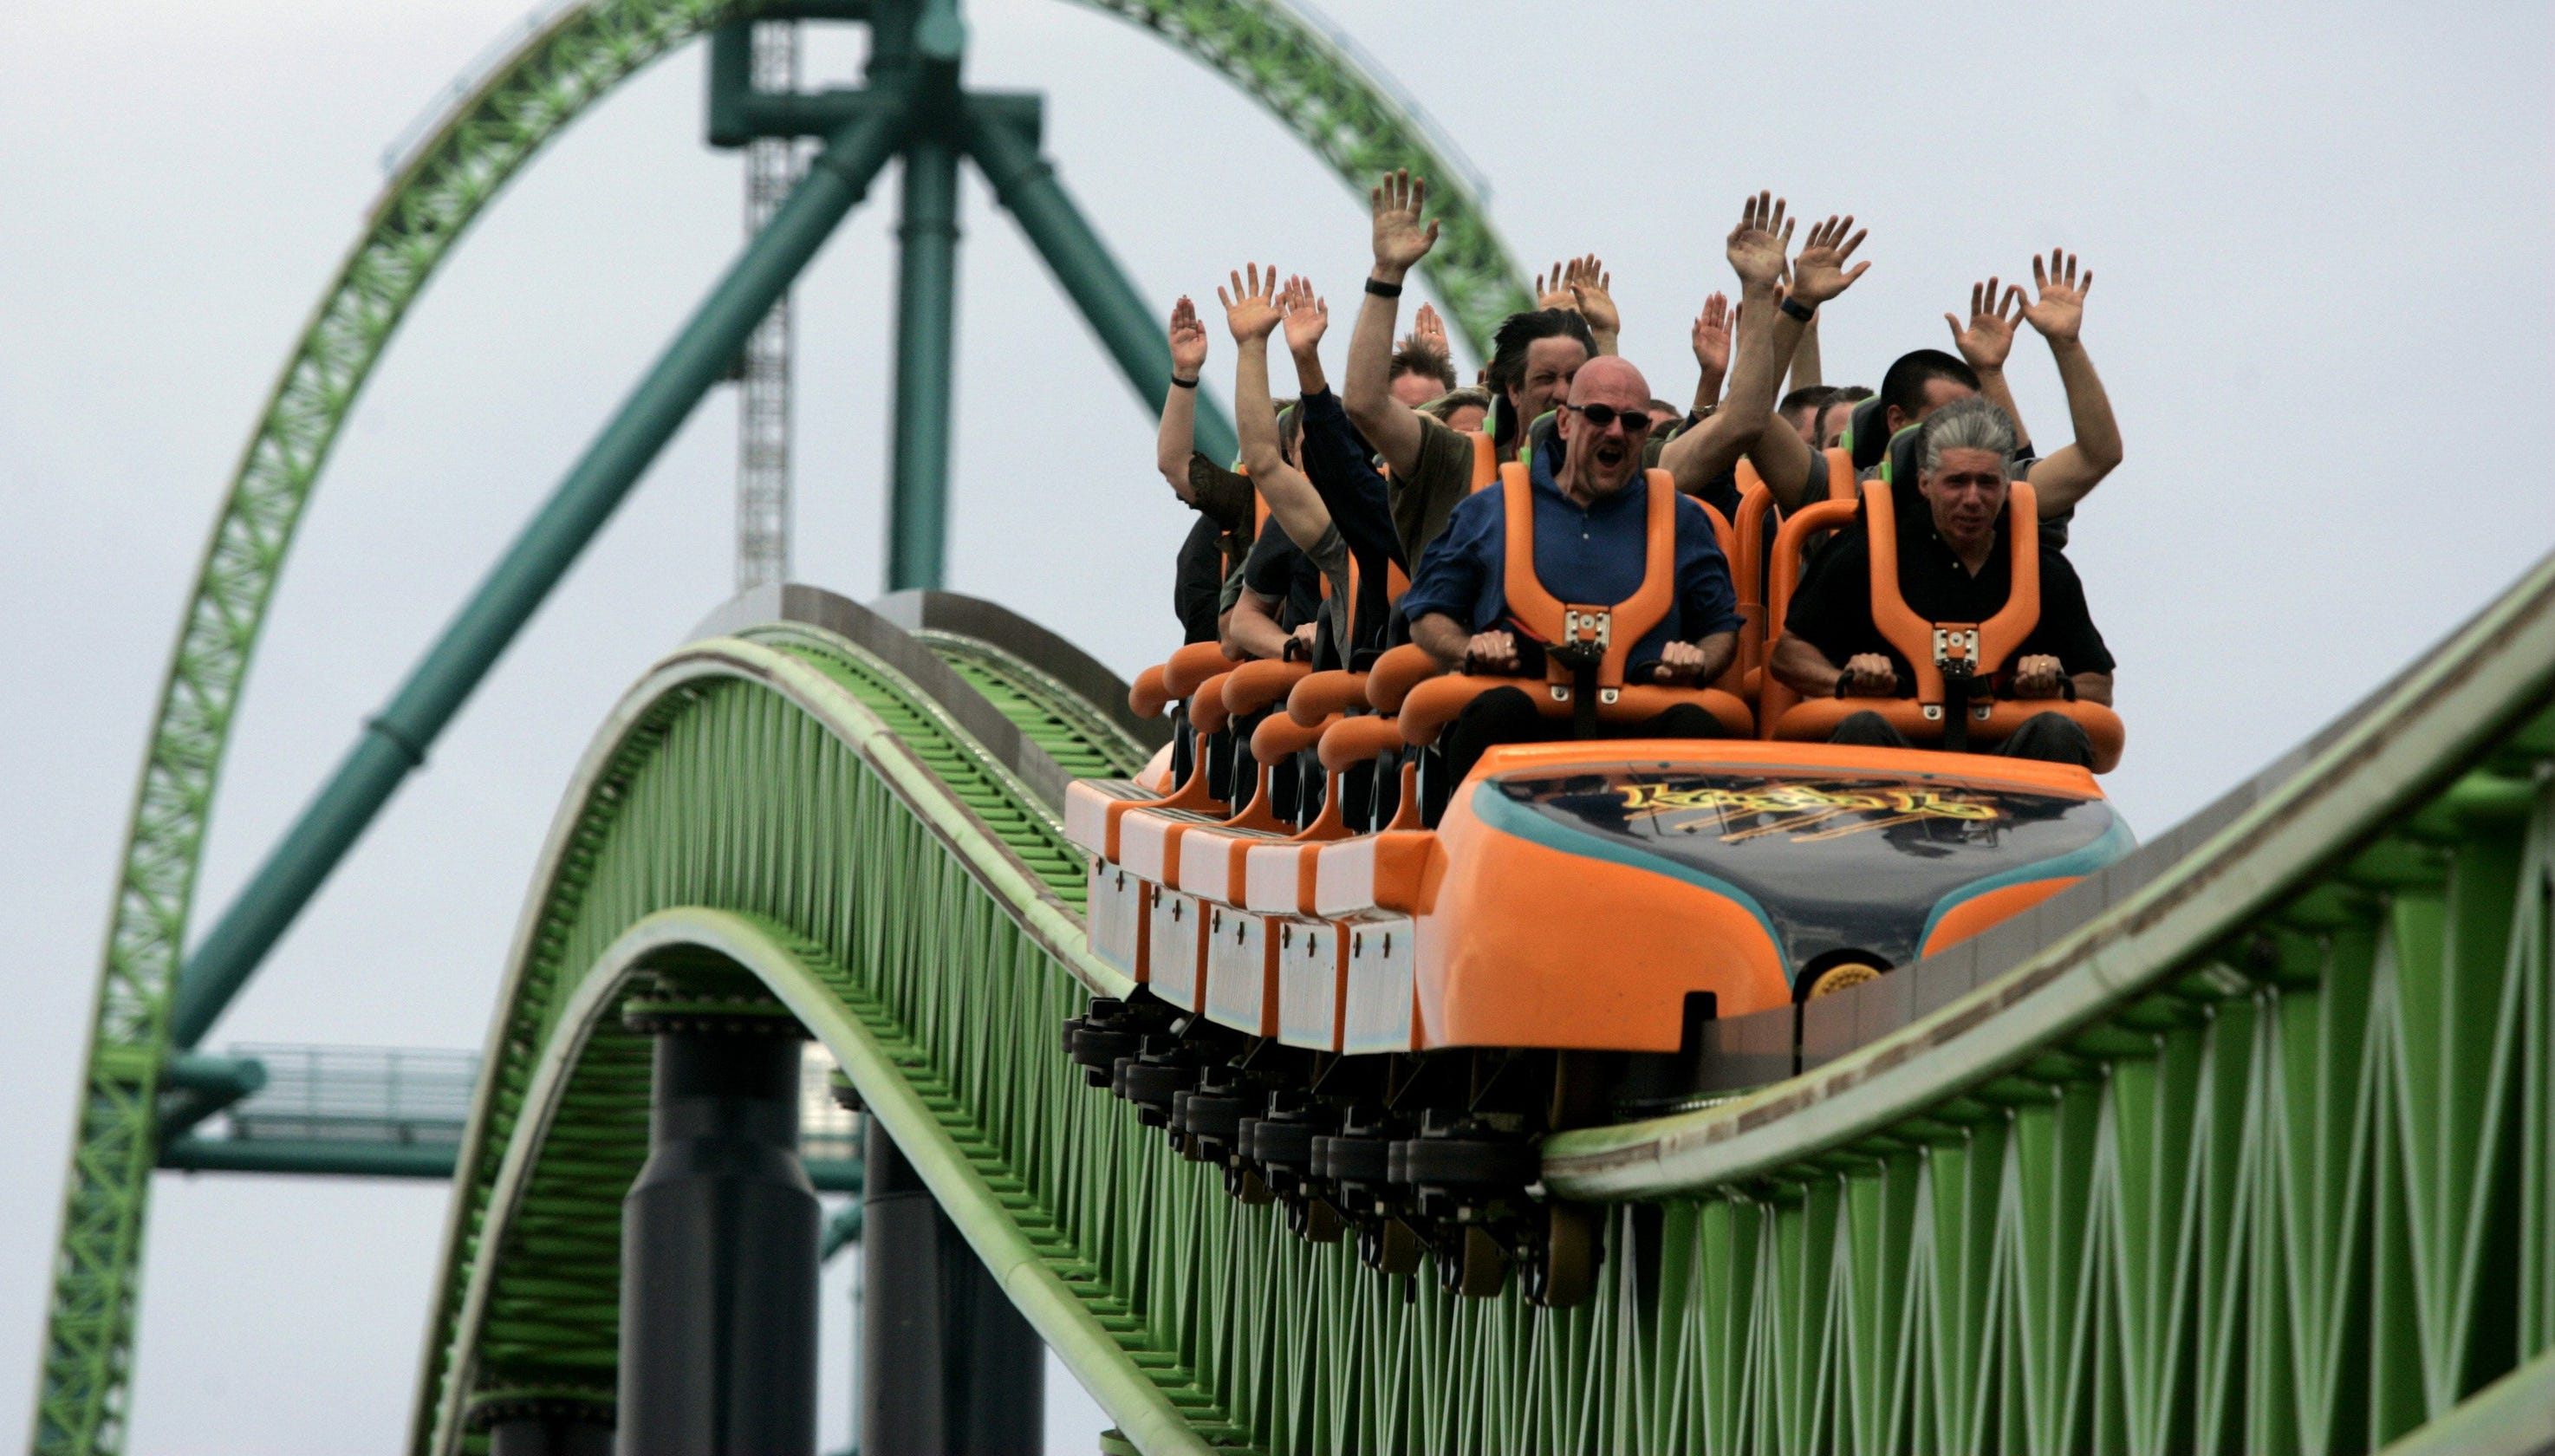 Lawsuit: Rider's height increases risk from Kingda Ka roller